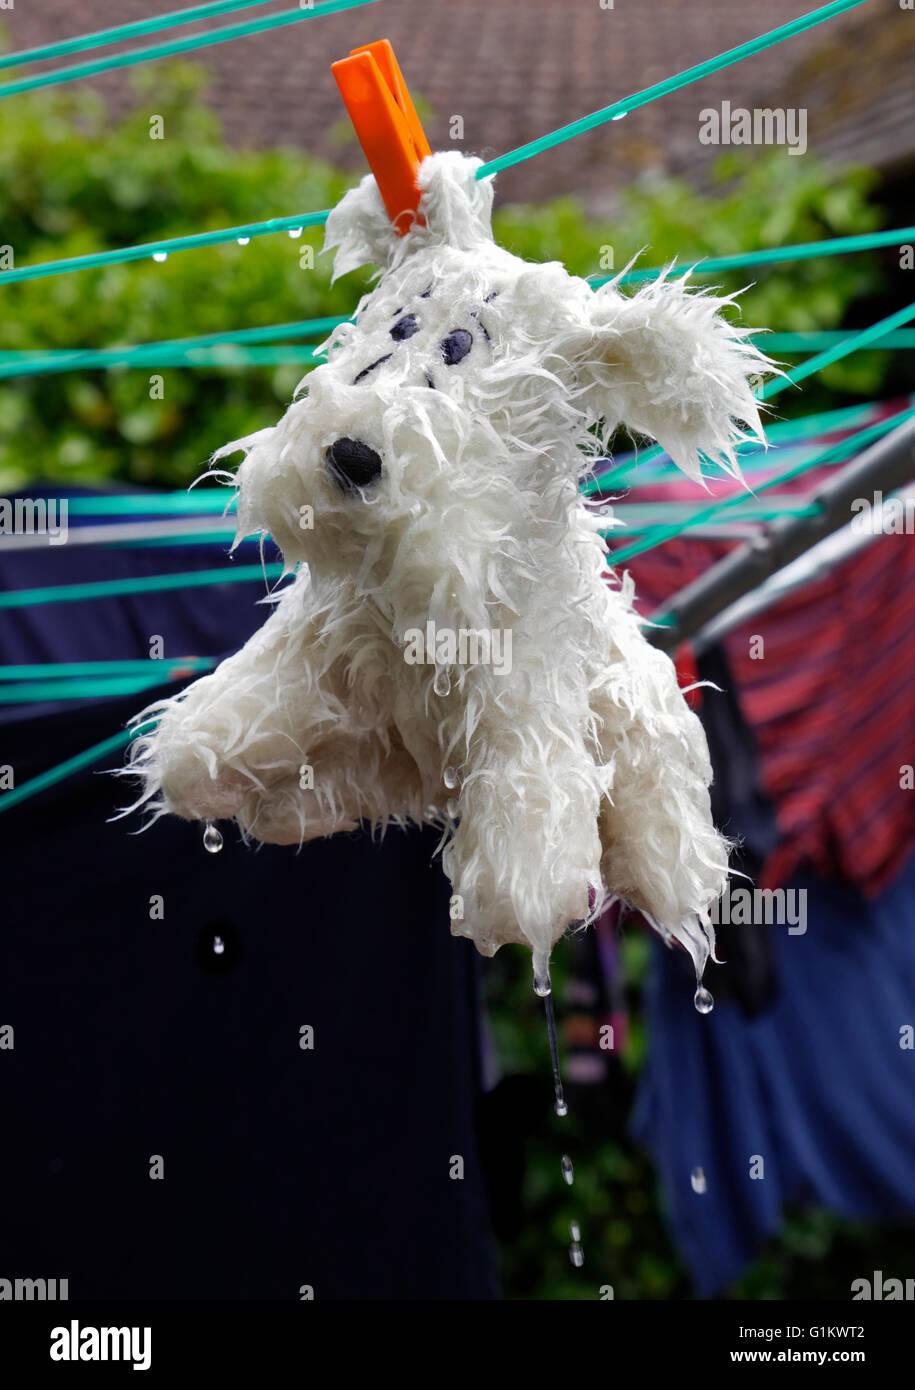 Favorite cute toy dog freshly shampooed washed and pegged dripping on clothes line - Stock Image